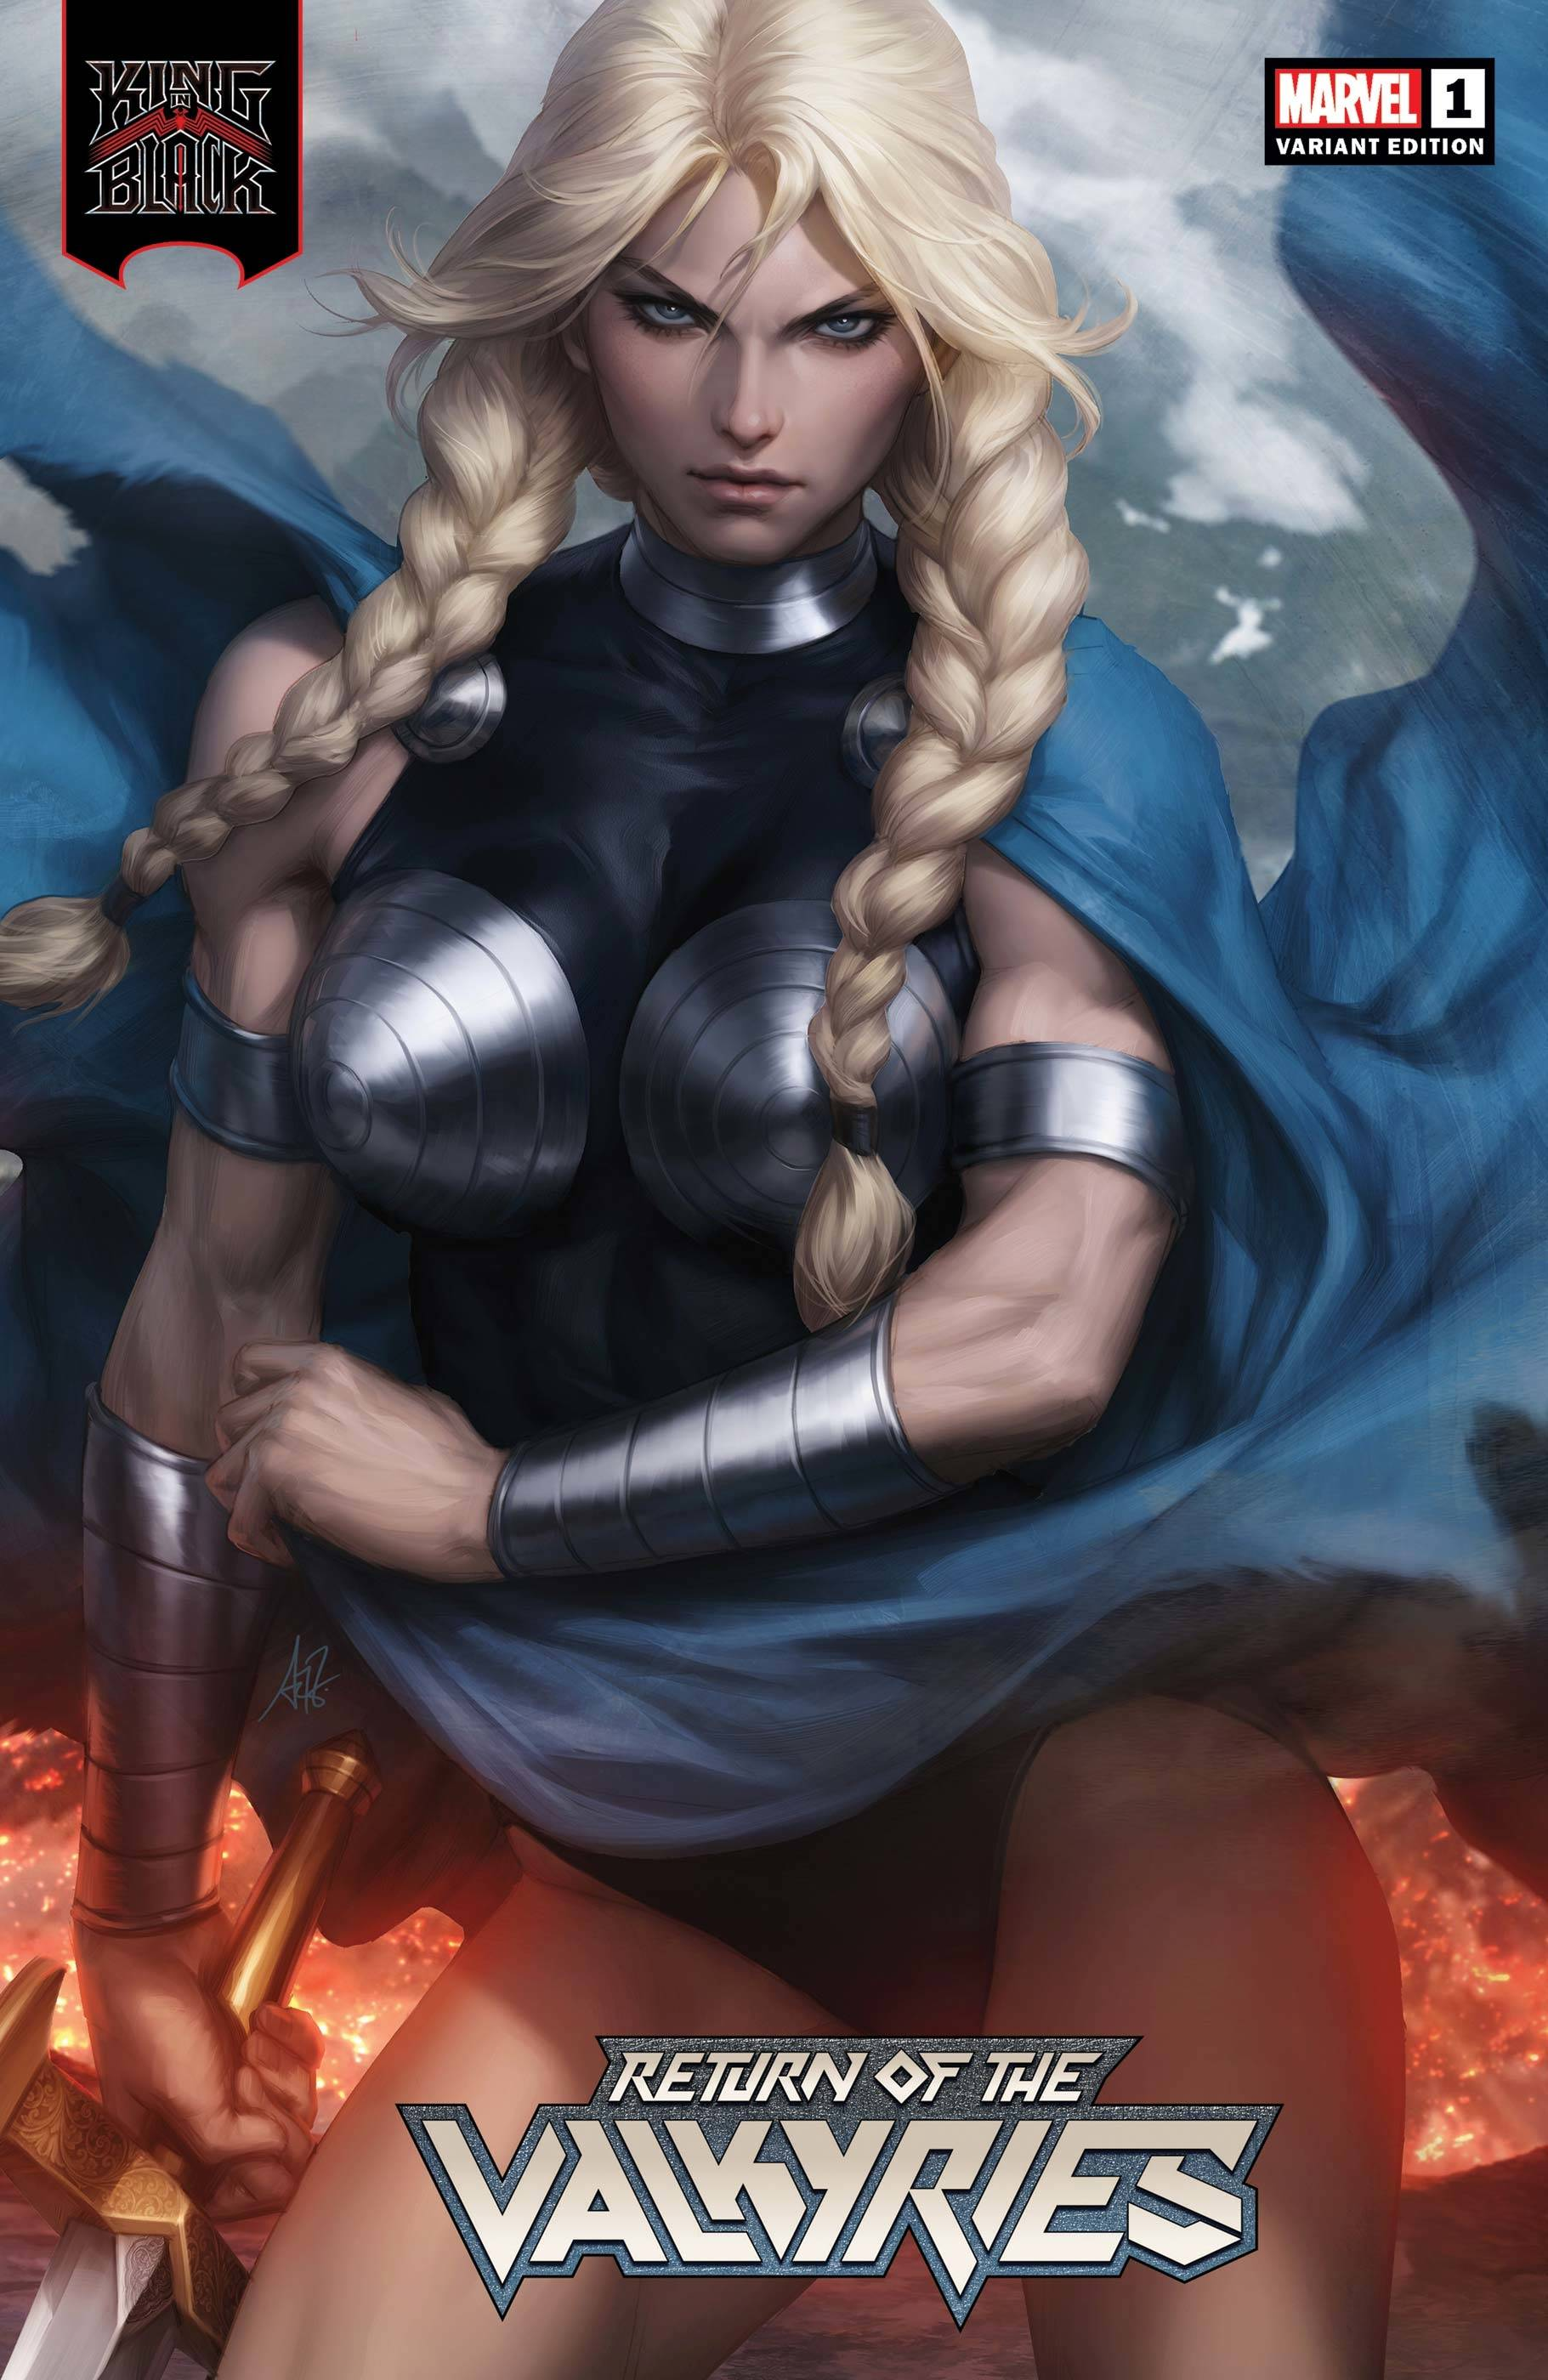 King in Black Return of the Valkyries #1